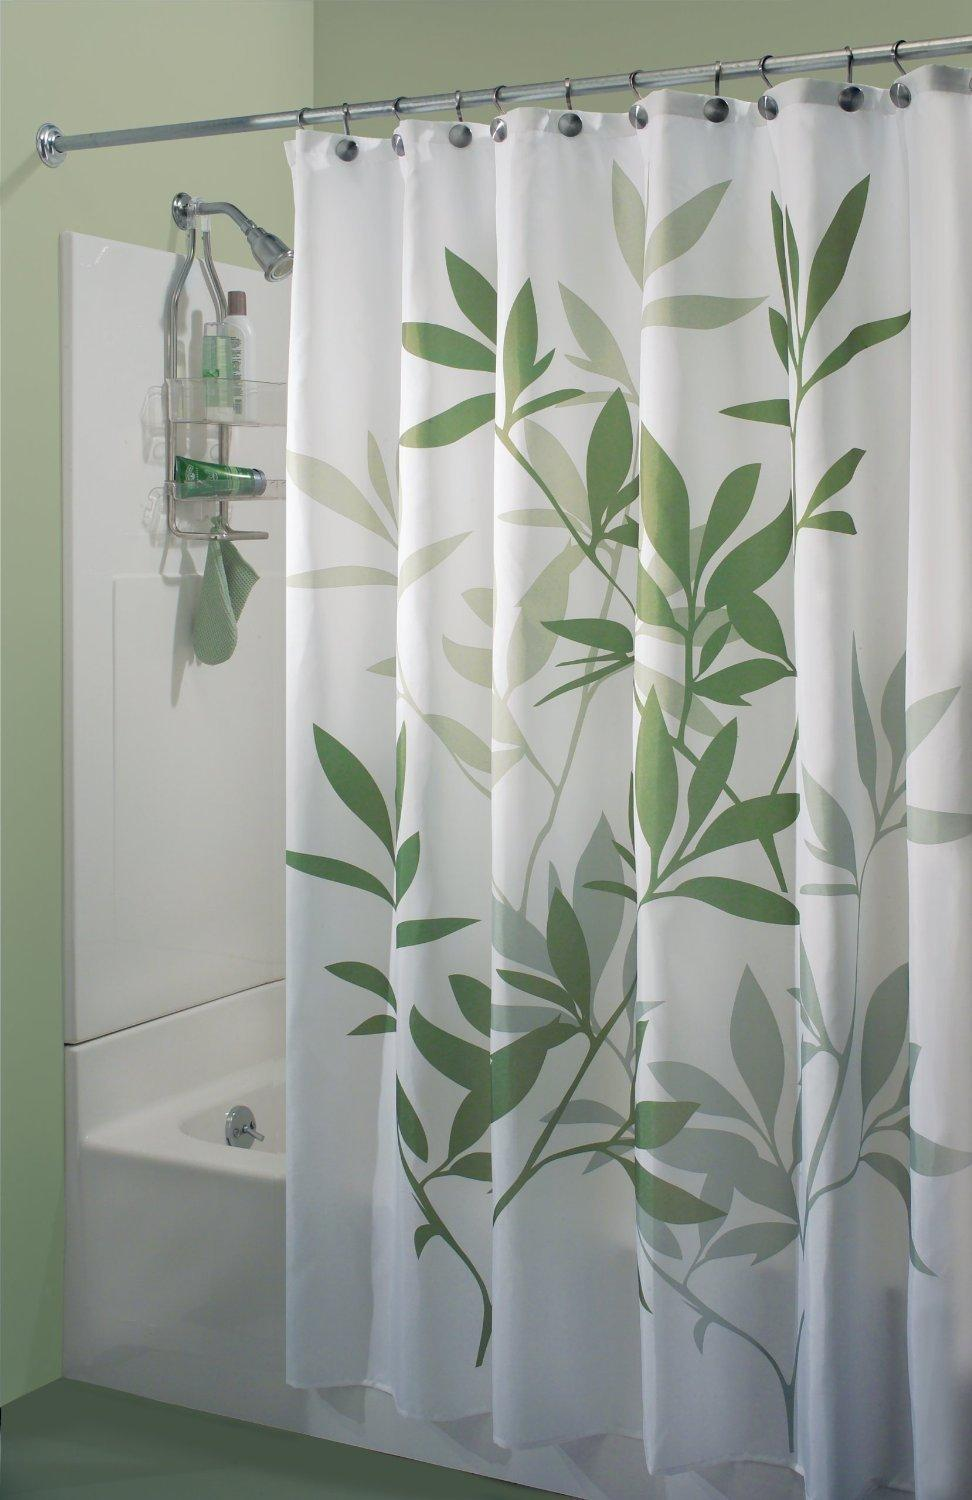 2018 Leaves Gray And Mint Shower Curtain Printing Waterproof Mildewproof Polyester Fabric Bath Bathroom From Goodwork 3545